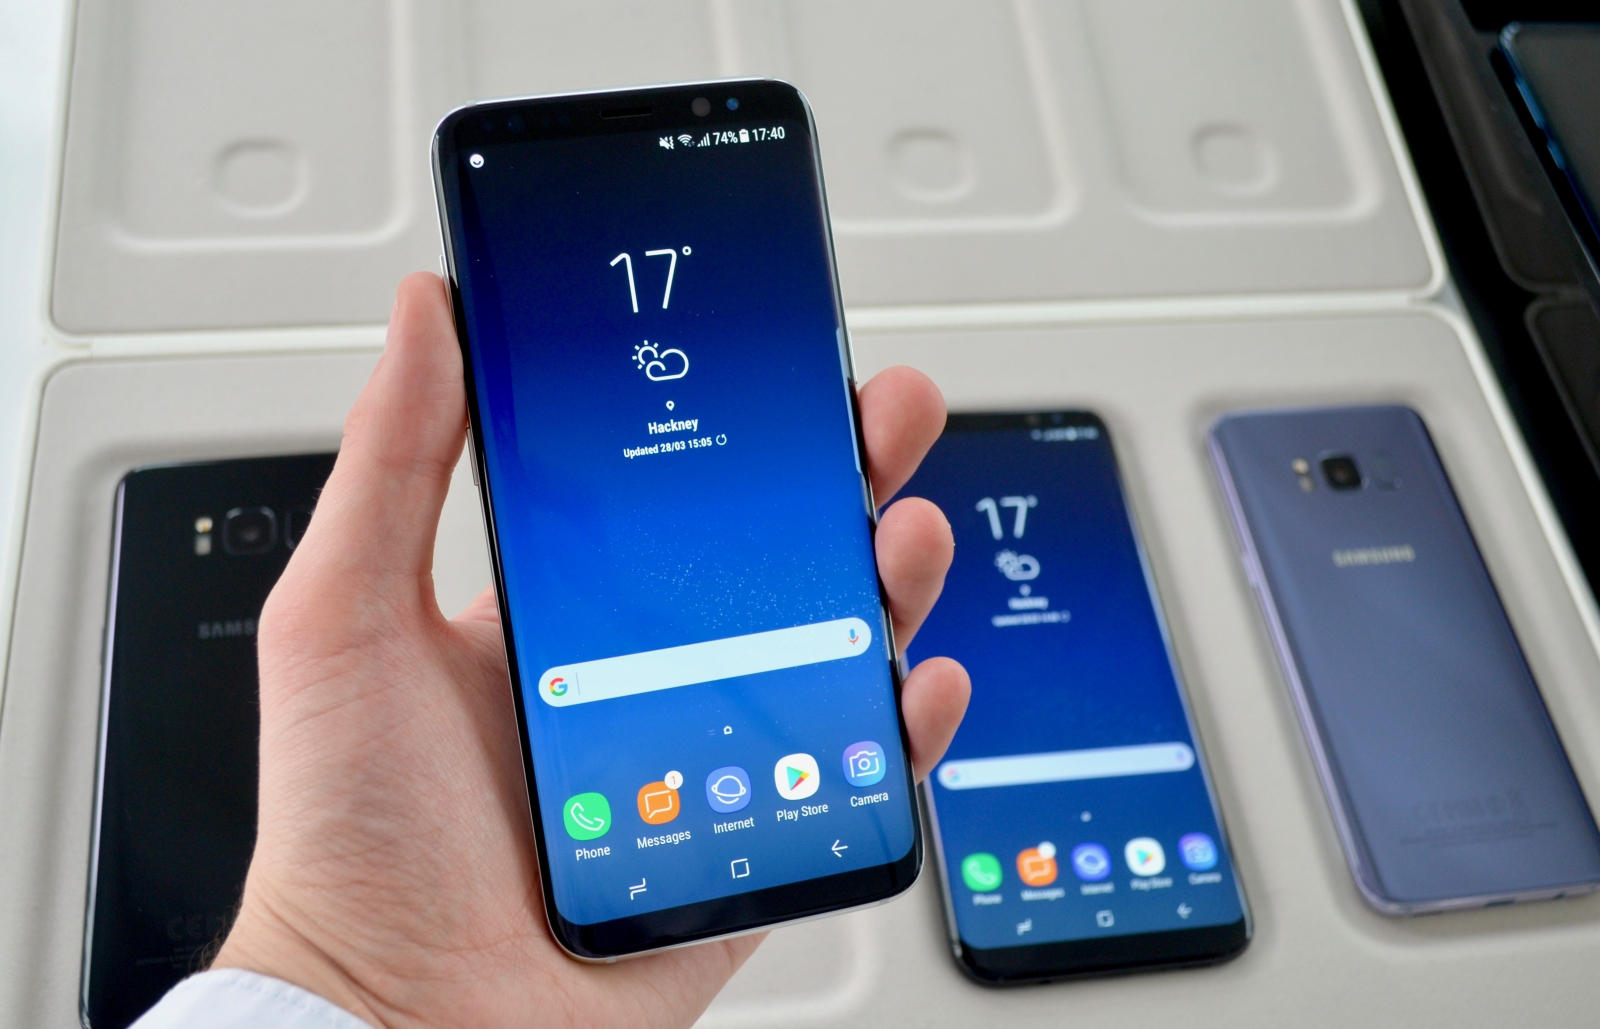 Samsung Galaxy S8 And S8 Plus Hands On A Guide To The New